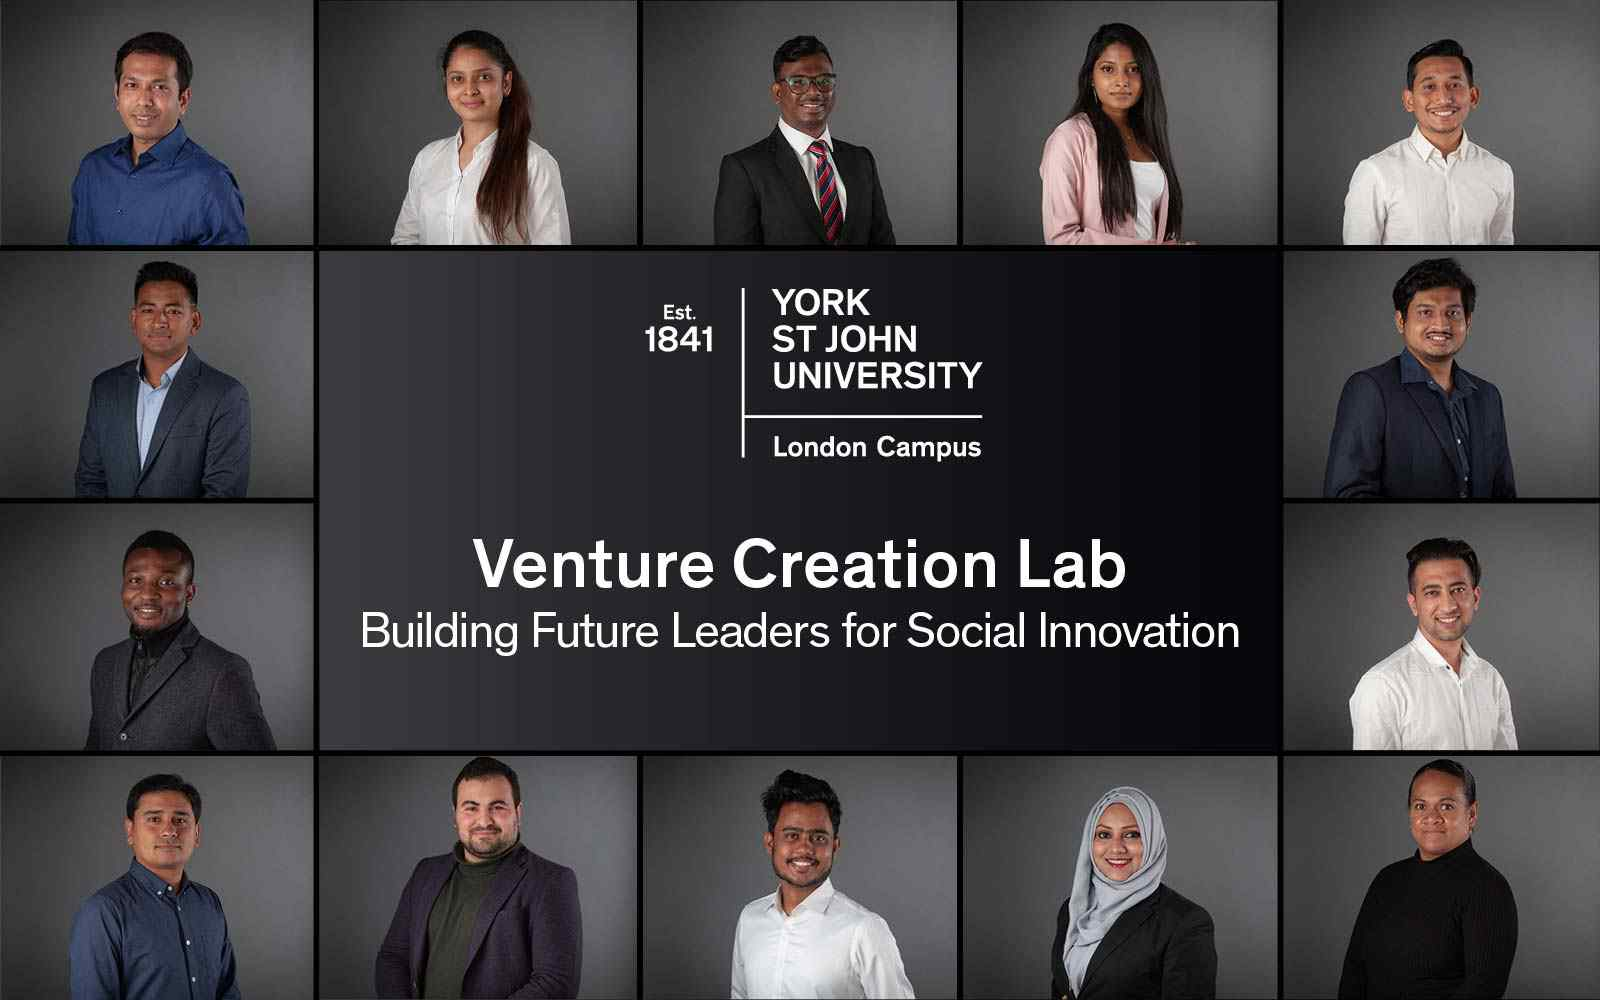 Collage of student headshots. Text reads: Venture Creation Lab; Building Future Leaders for Social Innovation